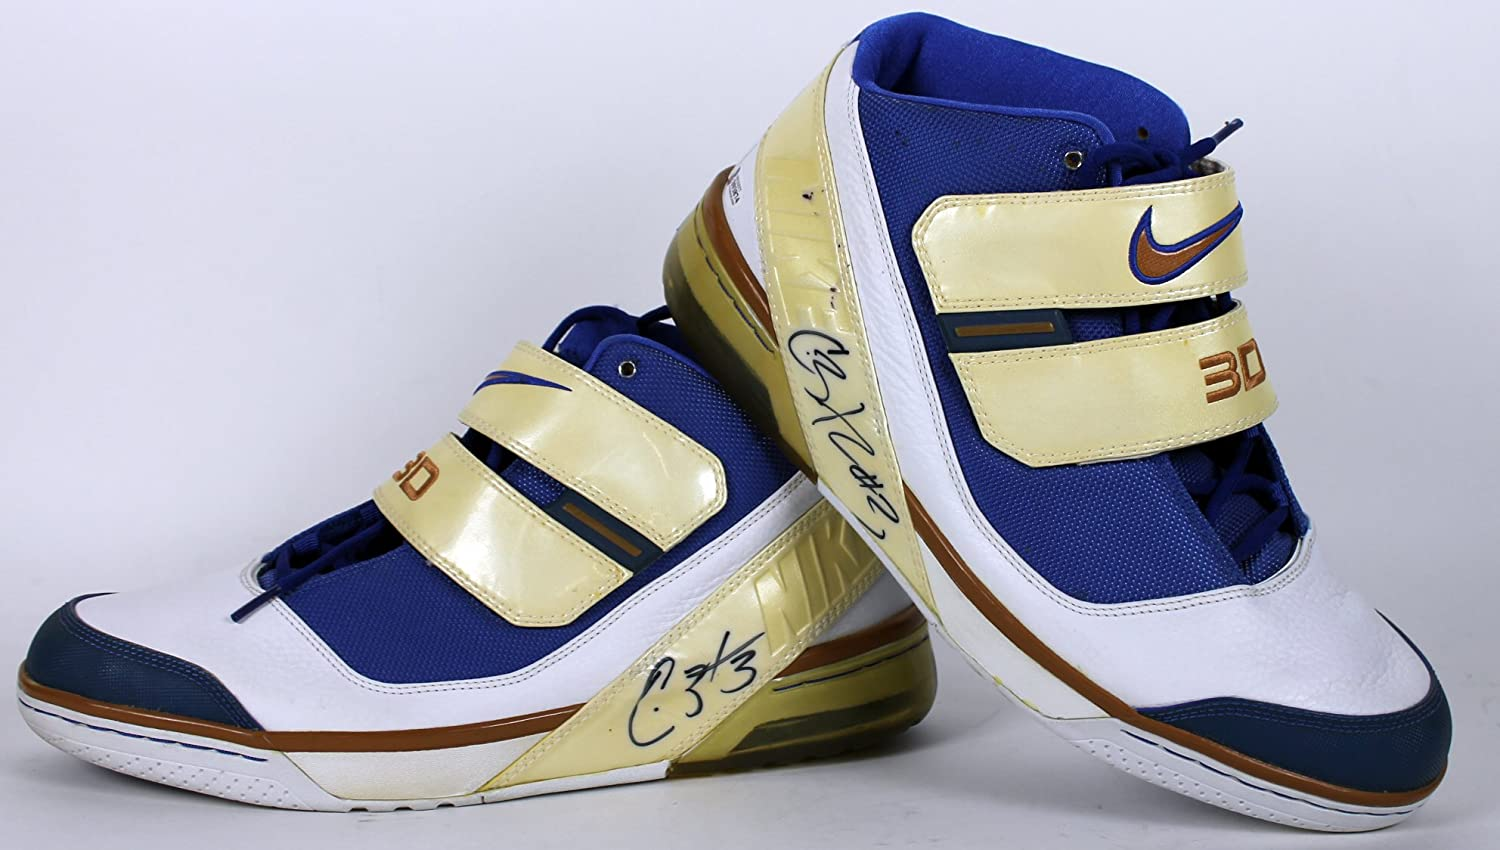 Couleurs variées a1a02 8f0b1 Wizards Caron Butler Authentic Signed Game Used Size 14 Nike ...